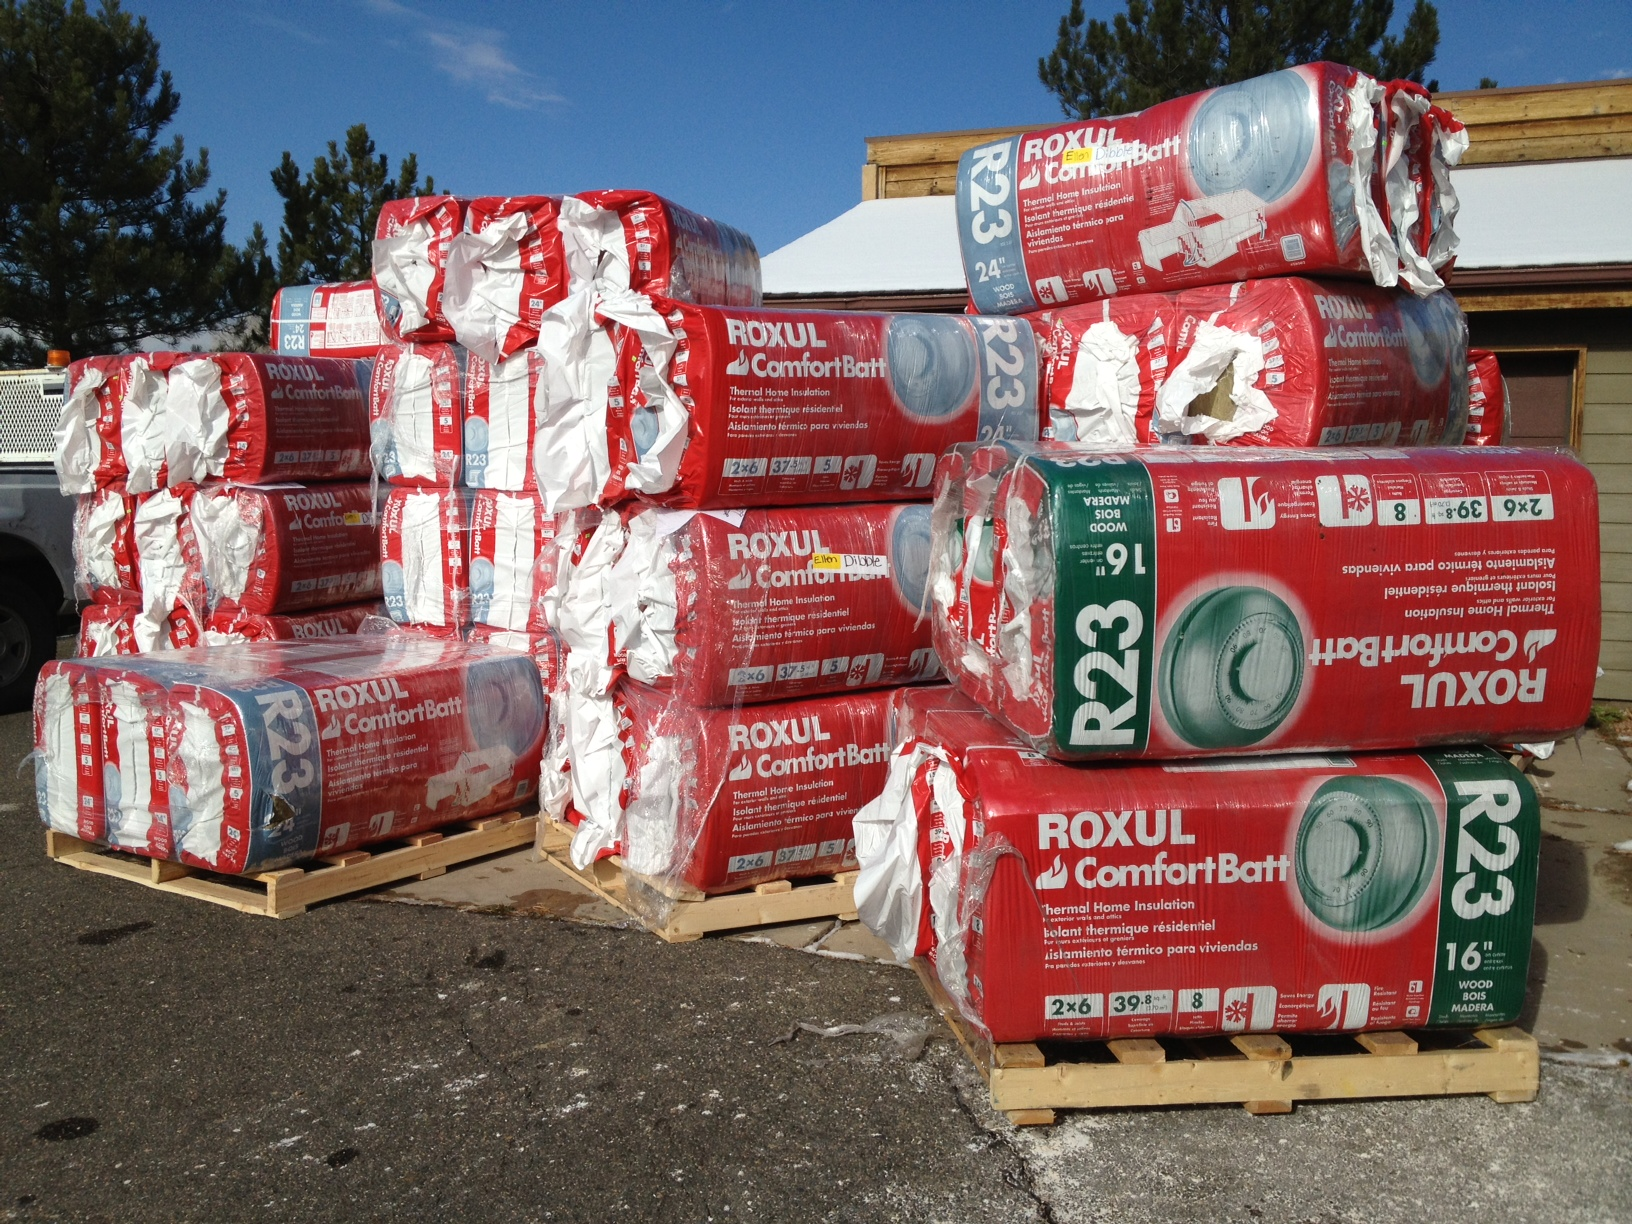 Roxul rock wool arrives twinsprings research institute for What is roxul insulation